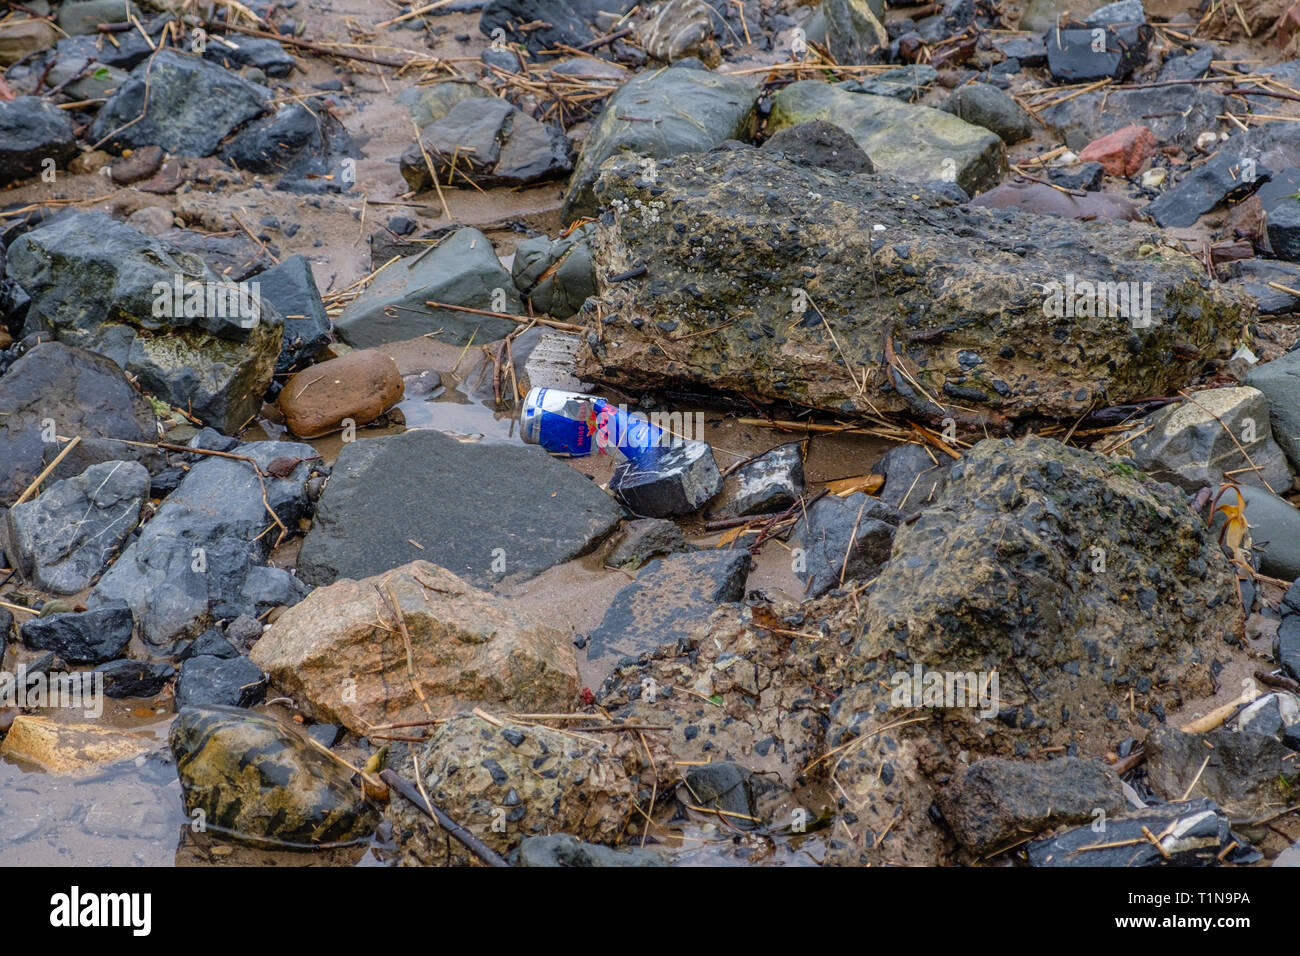 Irvine, Scotland, UK - March 18, 2019: Environmental image of Waste with Aluminium Red Bull Drinks Can being discarded on the beach in Irvine  Scotlan - Stock Image